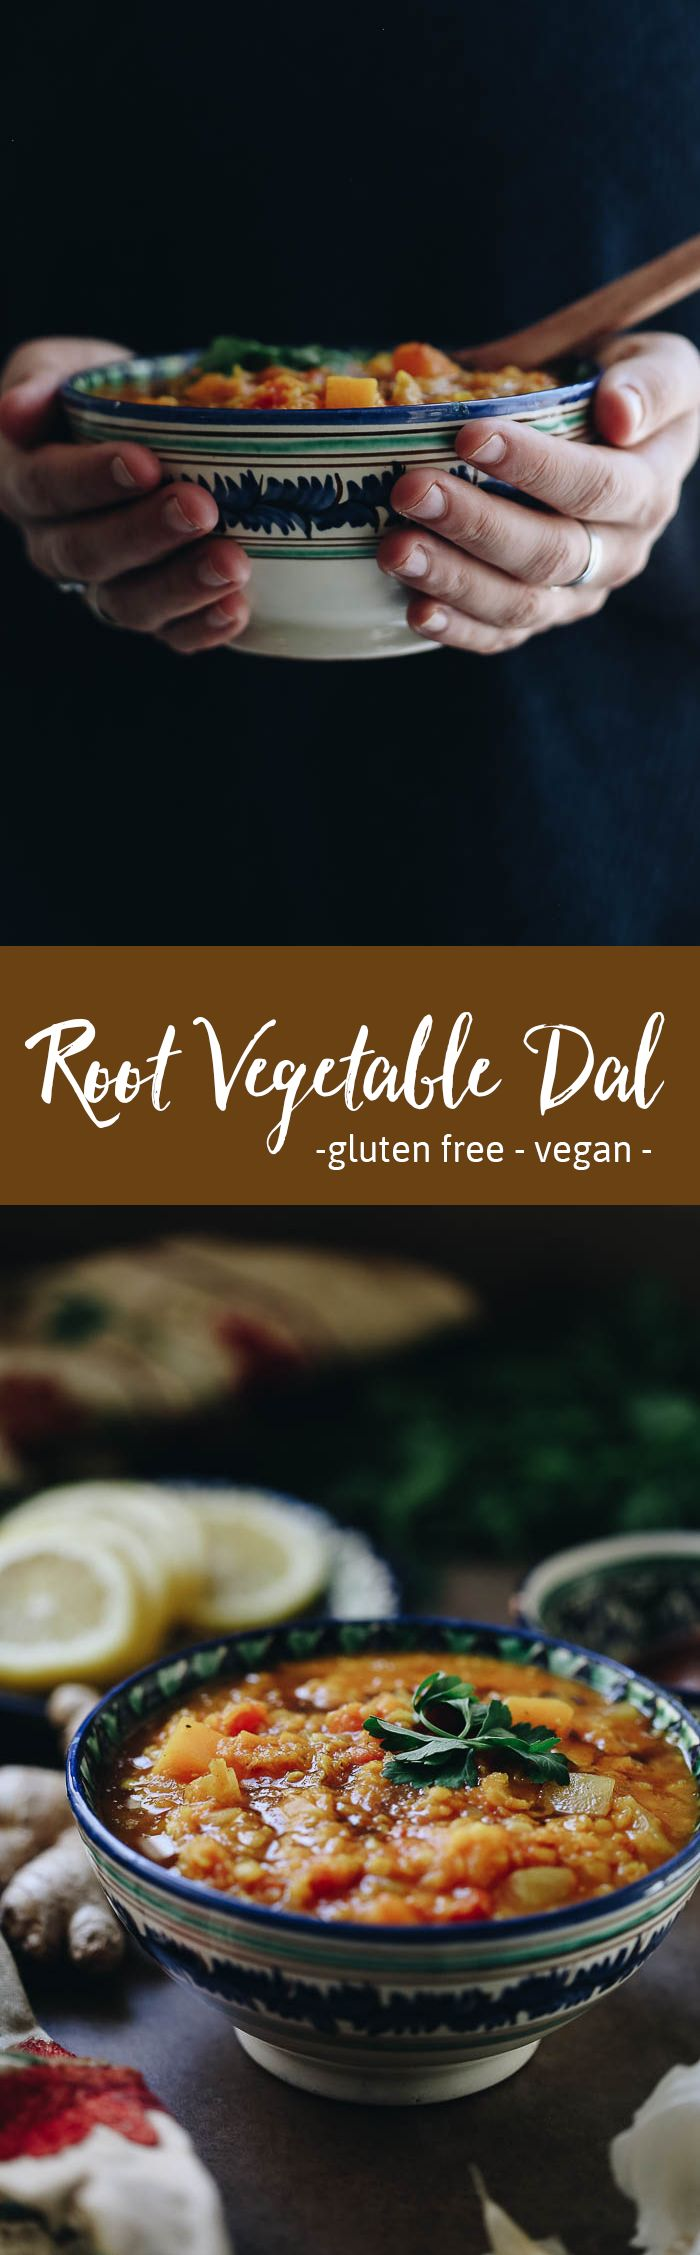 This easy Weeknight Root Vegetable Dal is the perfect answer to dinner this week. It's easily customizable based on what you have on hand and makes a hearty, vegetarian soup recipe full of nourishing ingredients!